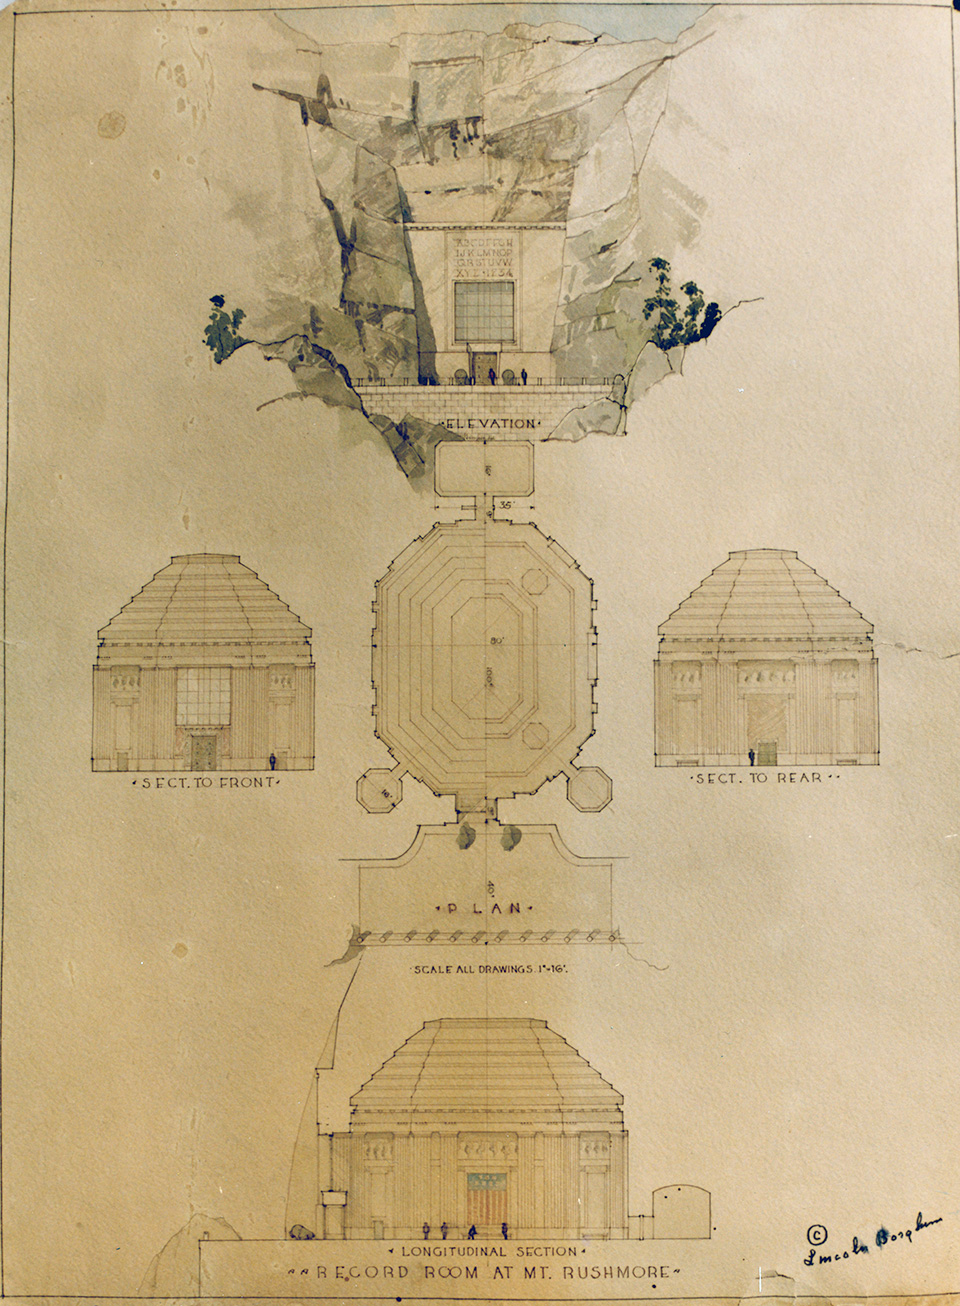 Plans for the Hall of Records.